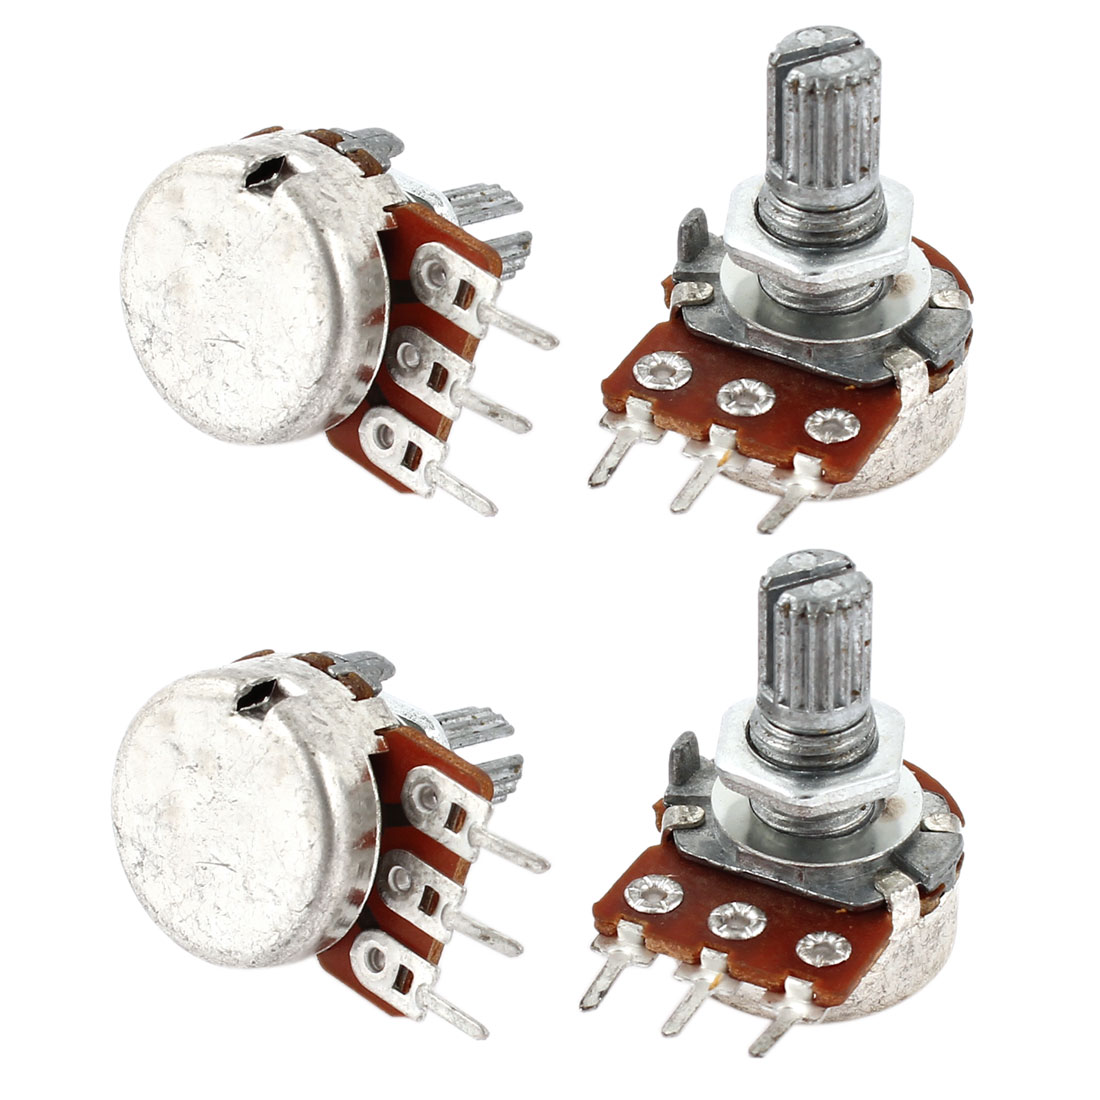 4 Pcs Single Linear Knurled Shaft Control Volume Potentiometers 100K Ohm WH148